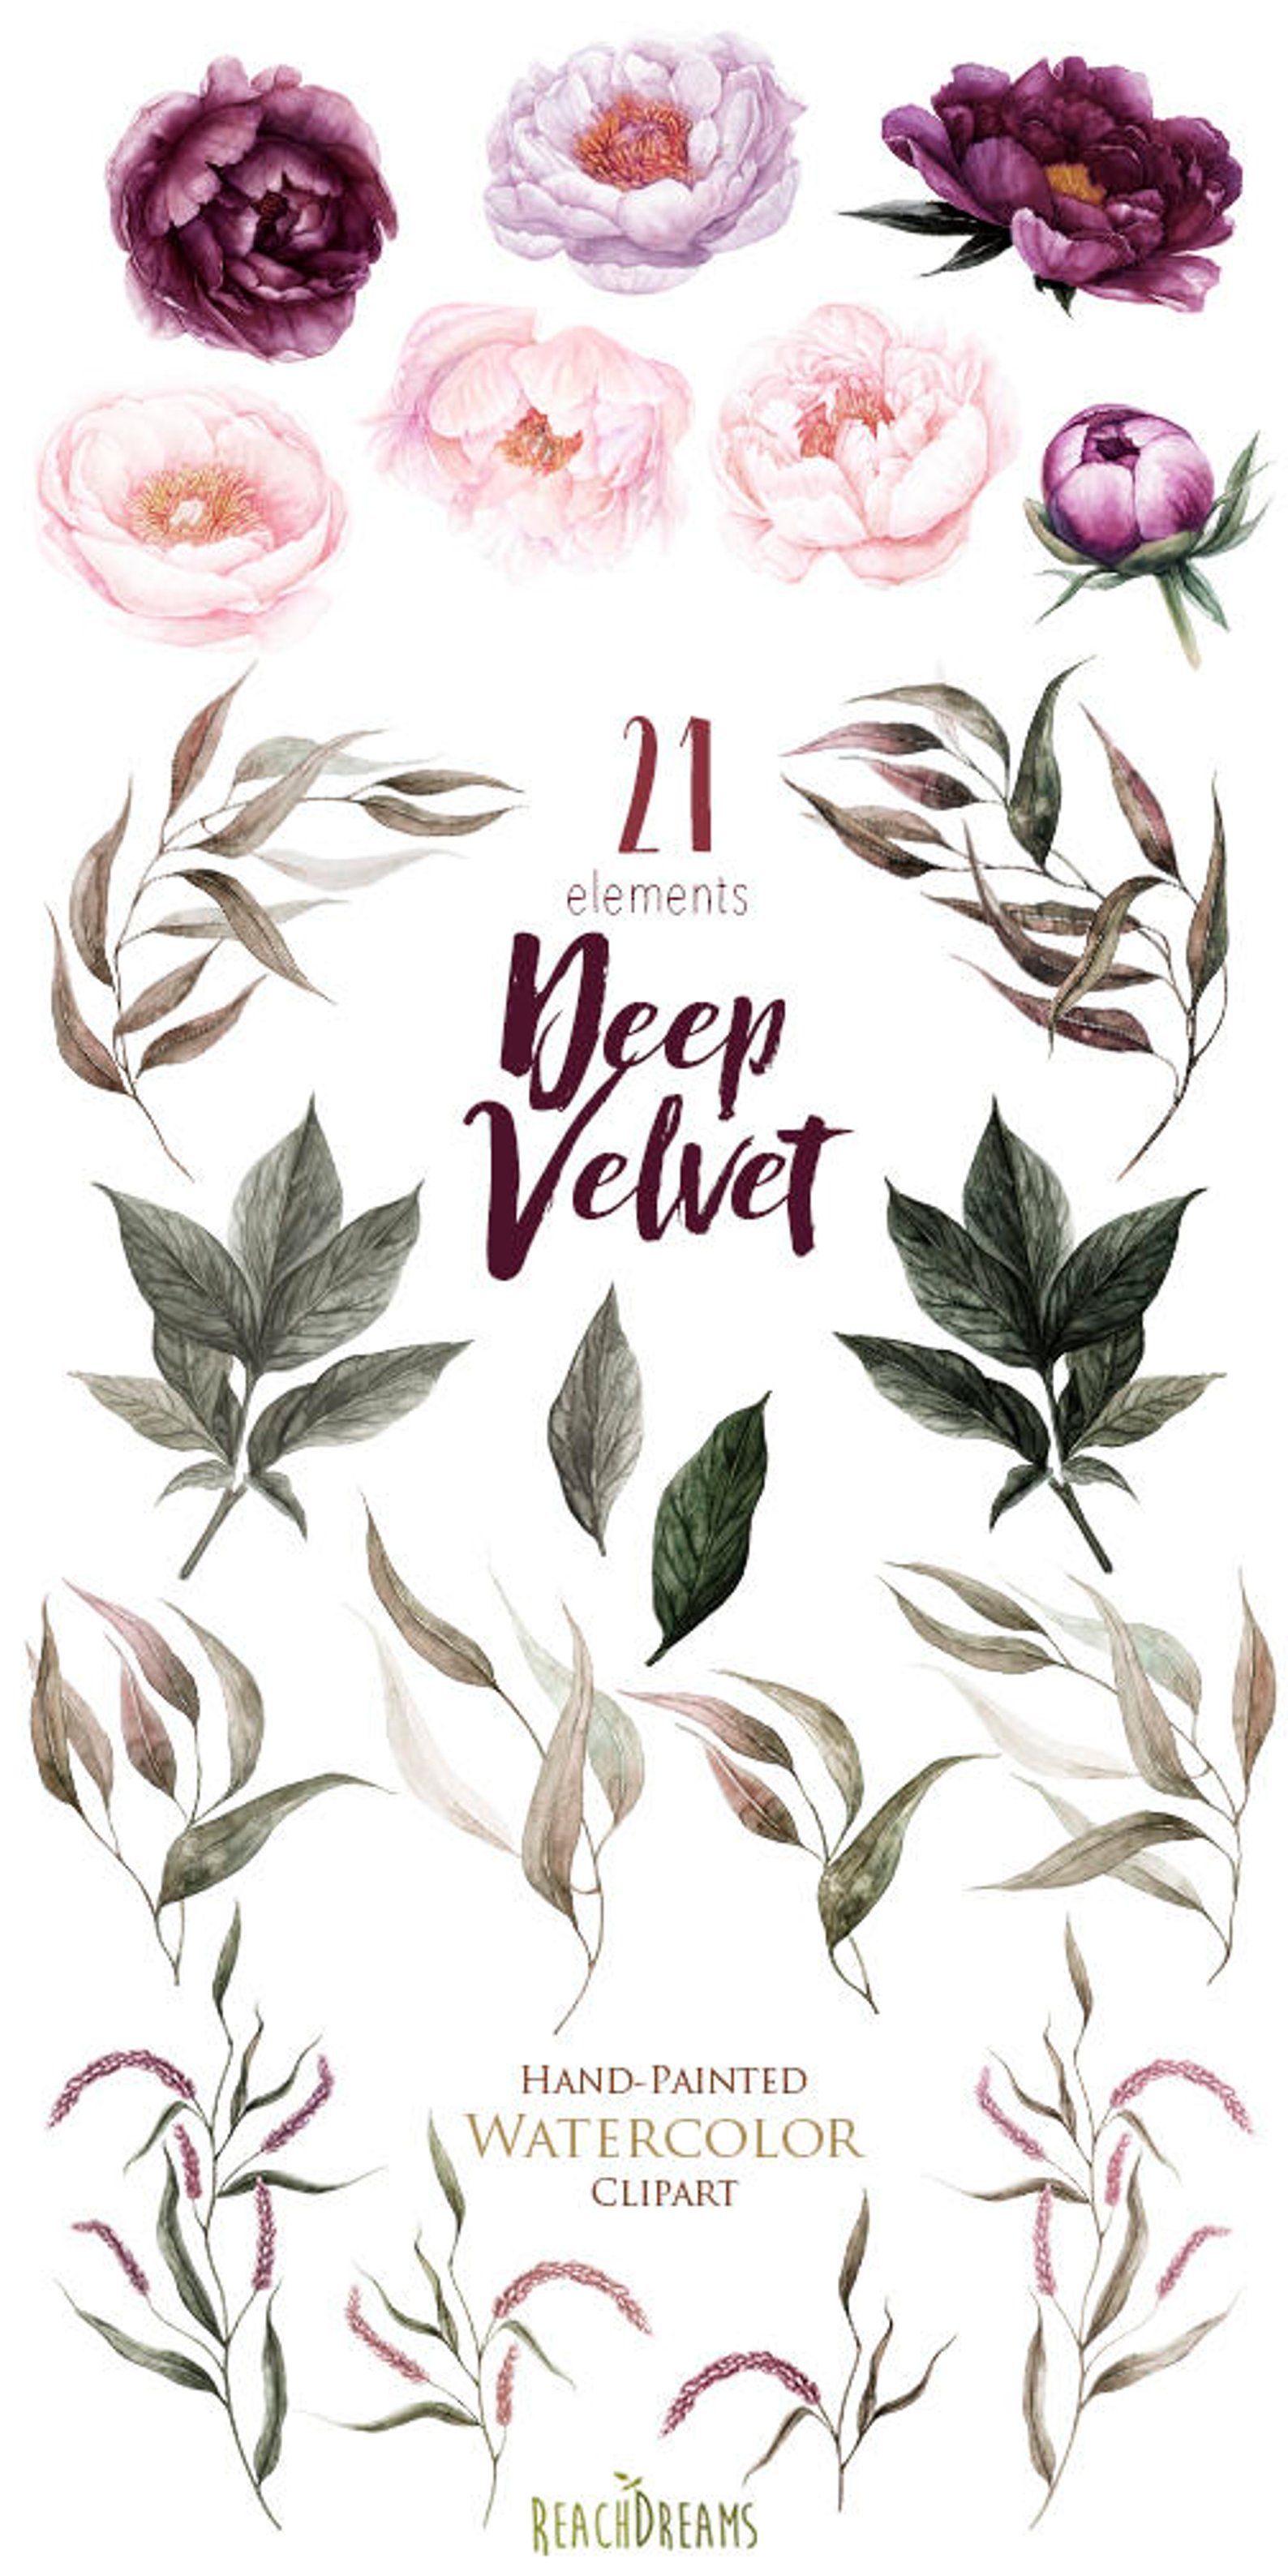 Peonies Flowers Watercolor Floral Elements Plum Burgundy Violet Botanical Boho Clipart Hand Painted Wedding Clip Art Digital Png Blumen Aquarell Blumenzeichnung Wasserfarbenblumen